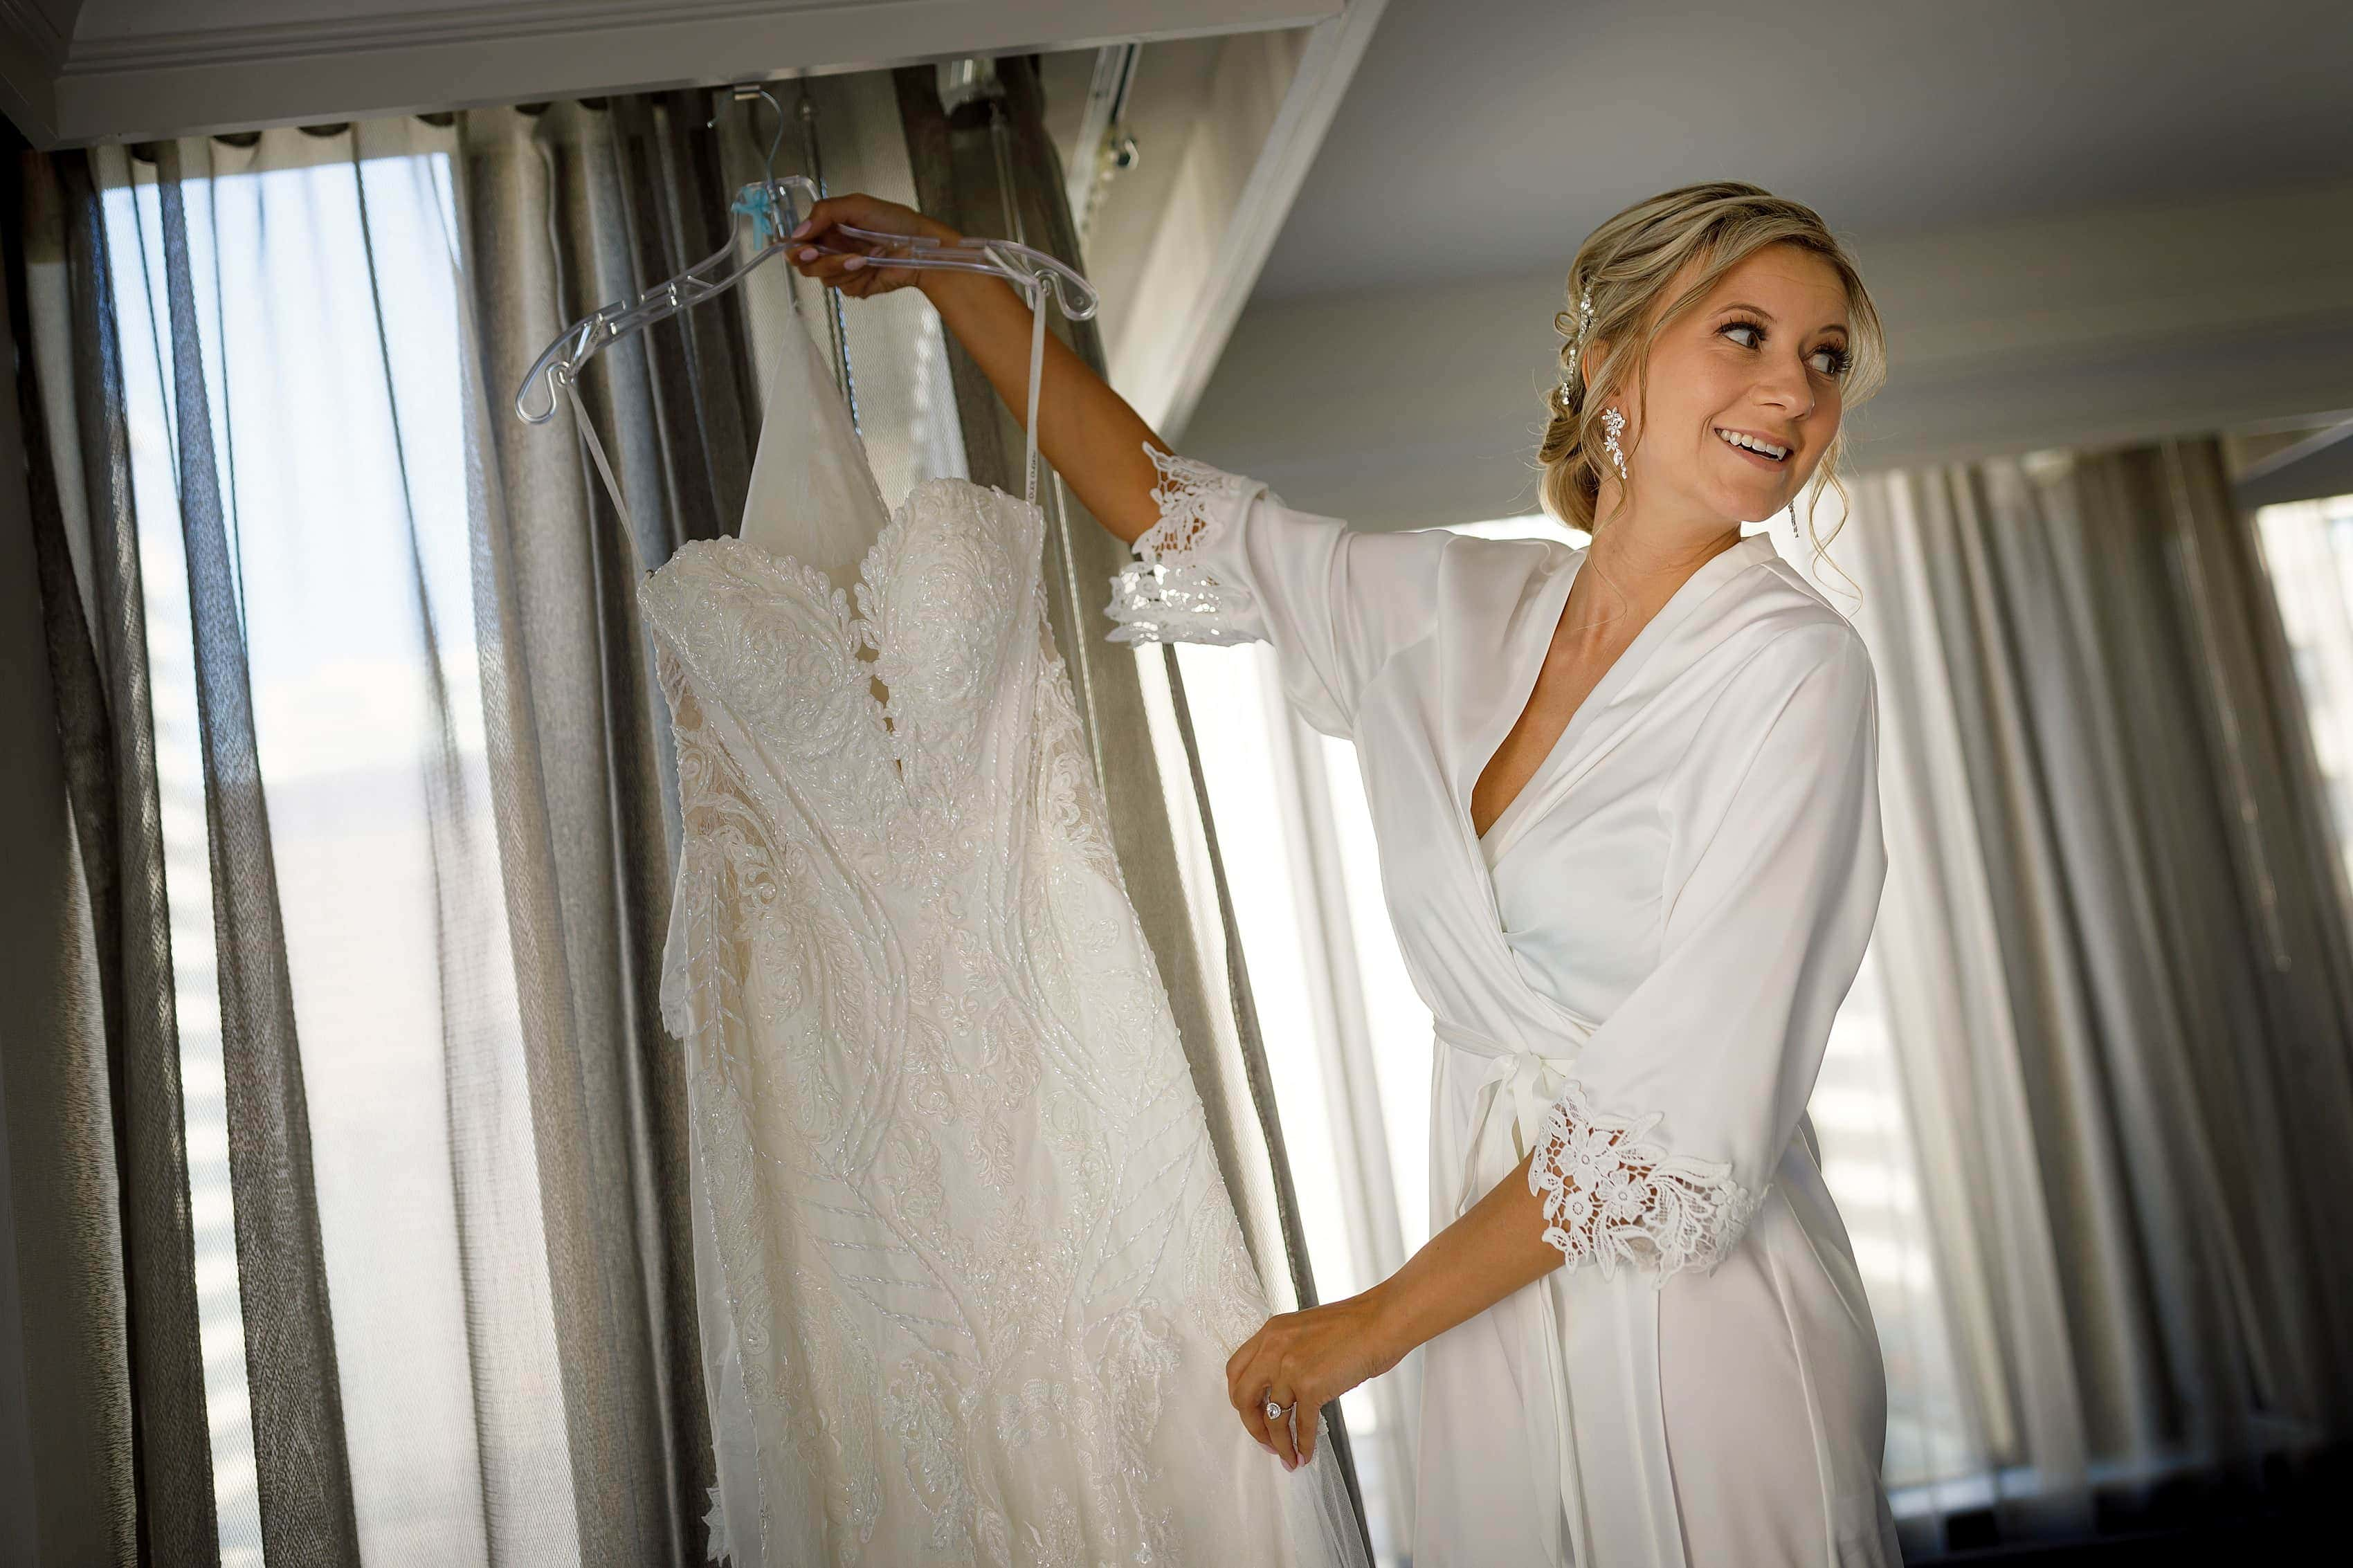 Bride taking dress down off hanger in Lux Suite at Gwen Hotel in downtown Chicago